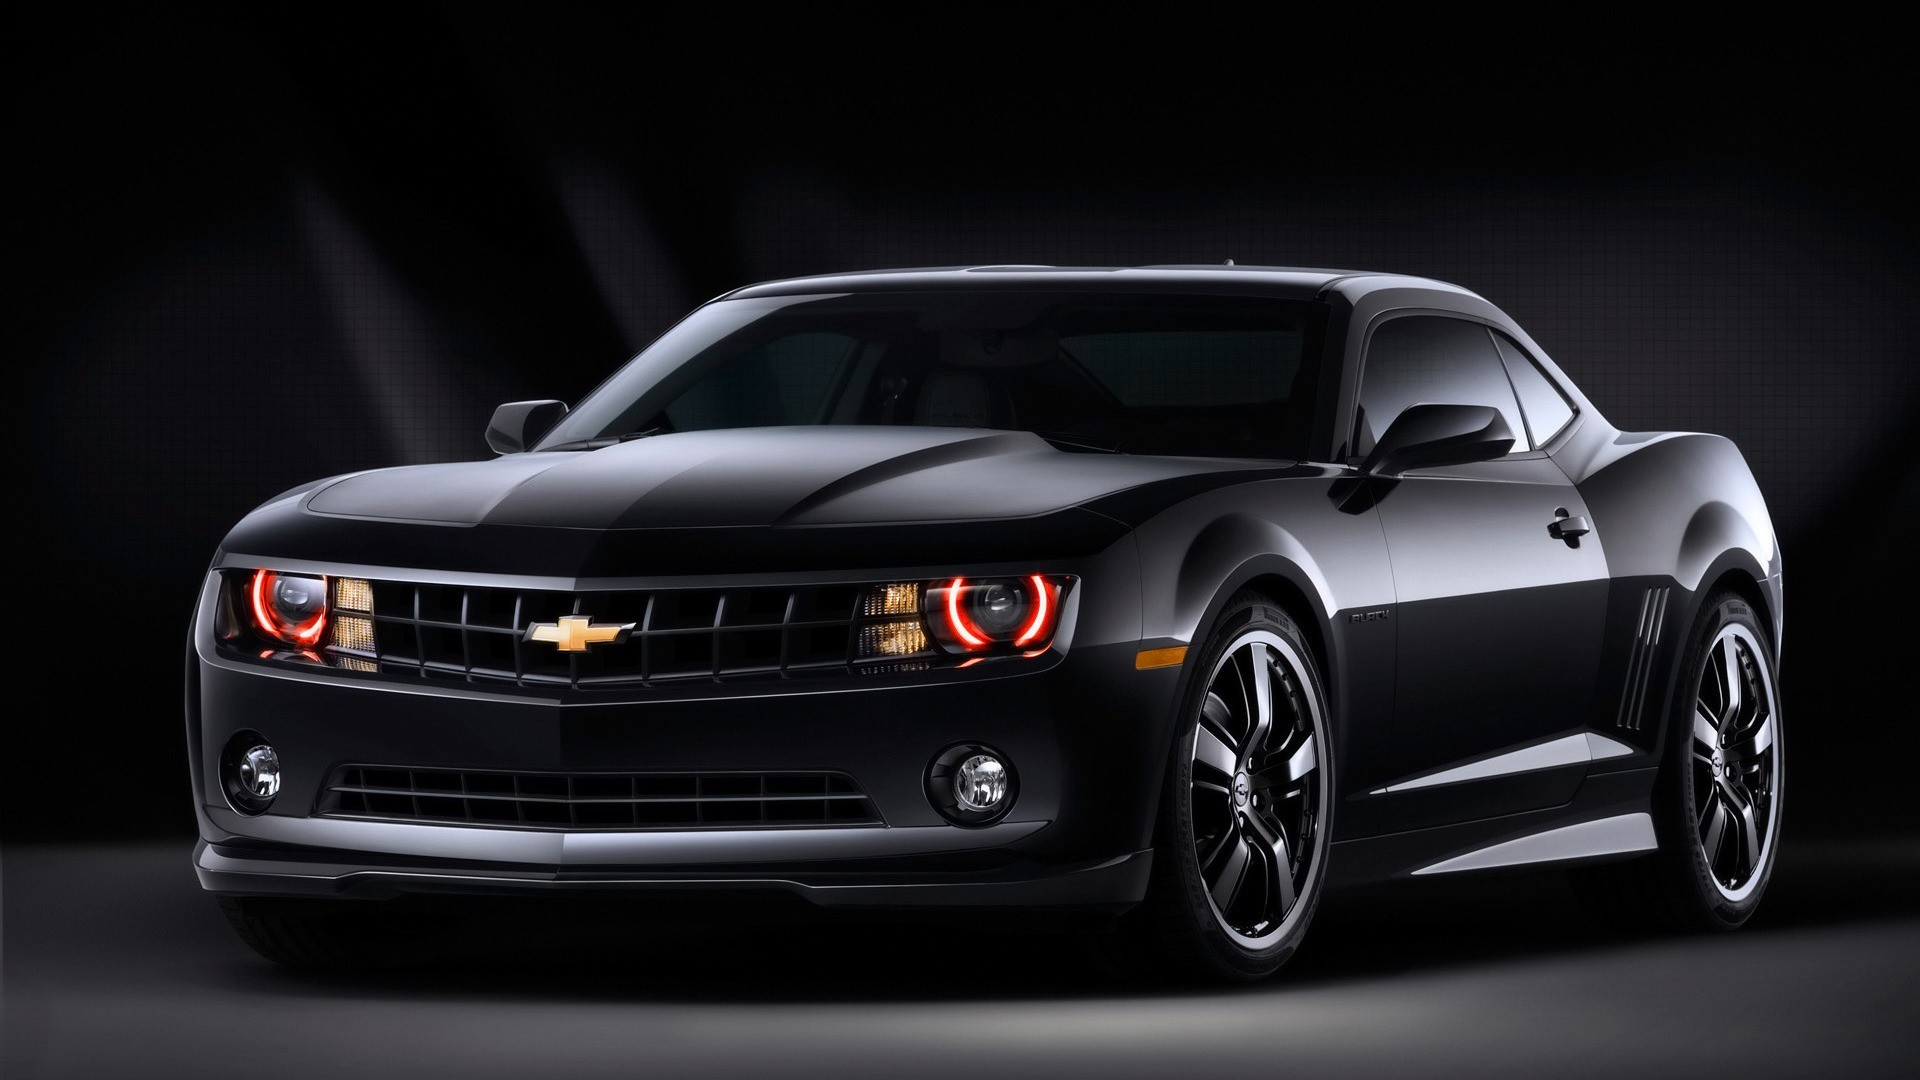 1080p Chevrolet Car-HD Wallpaper